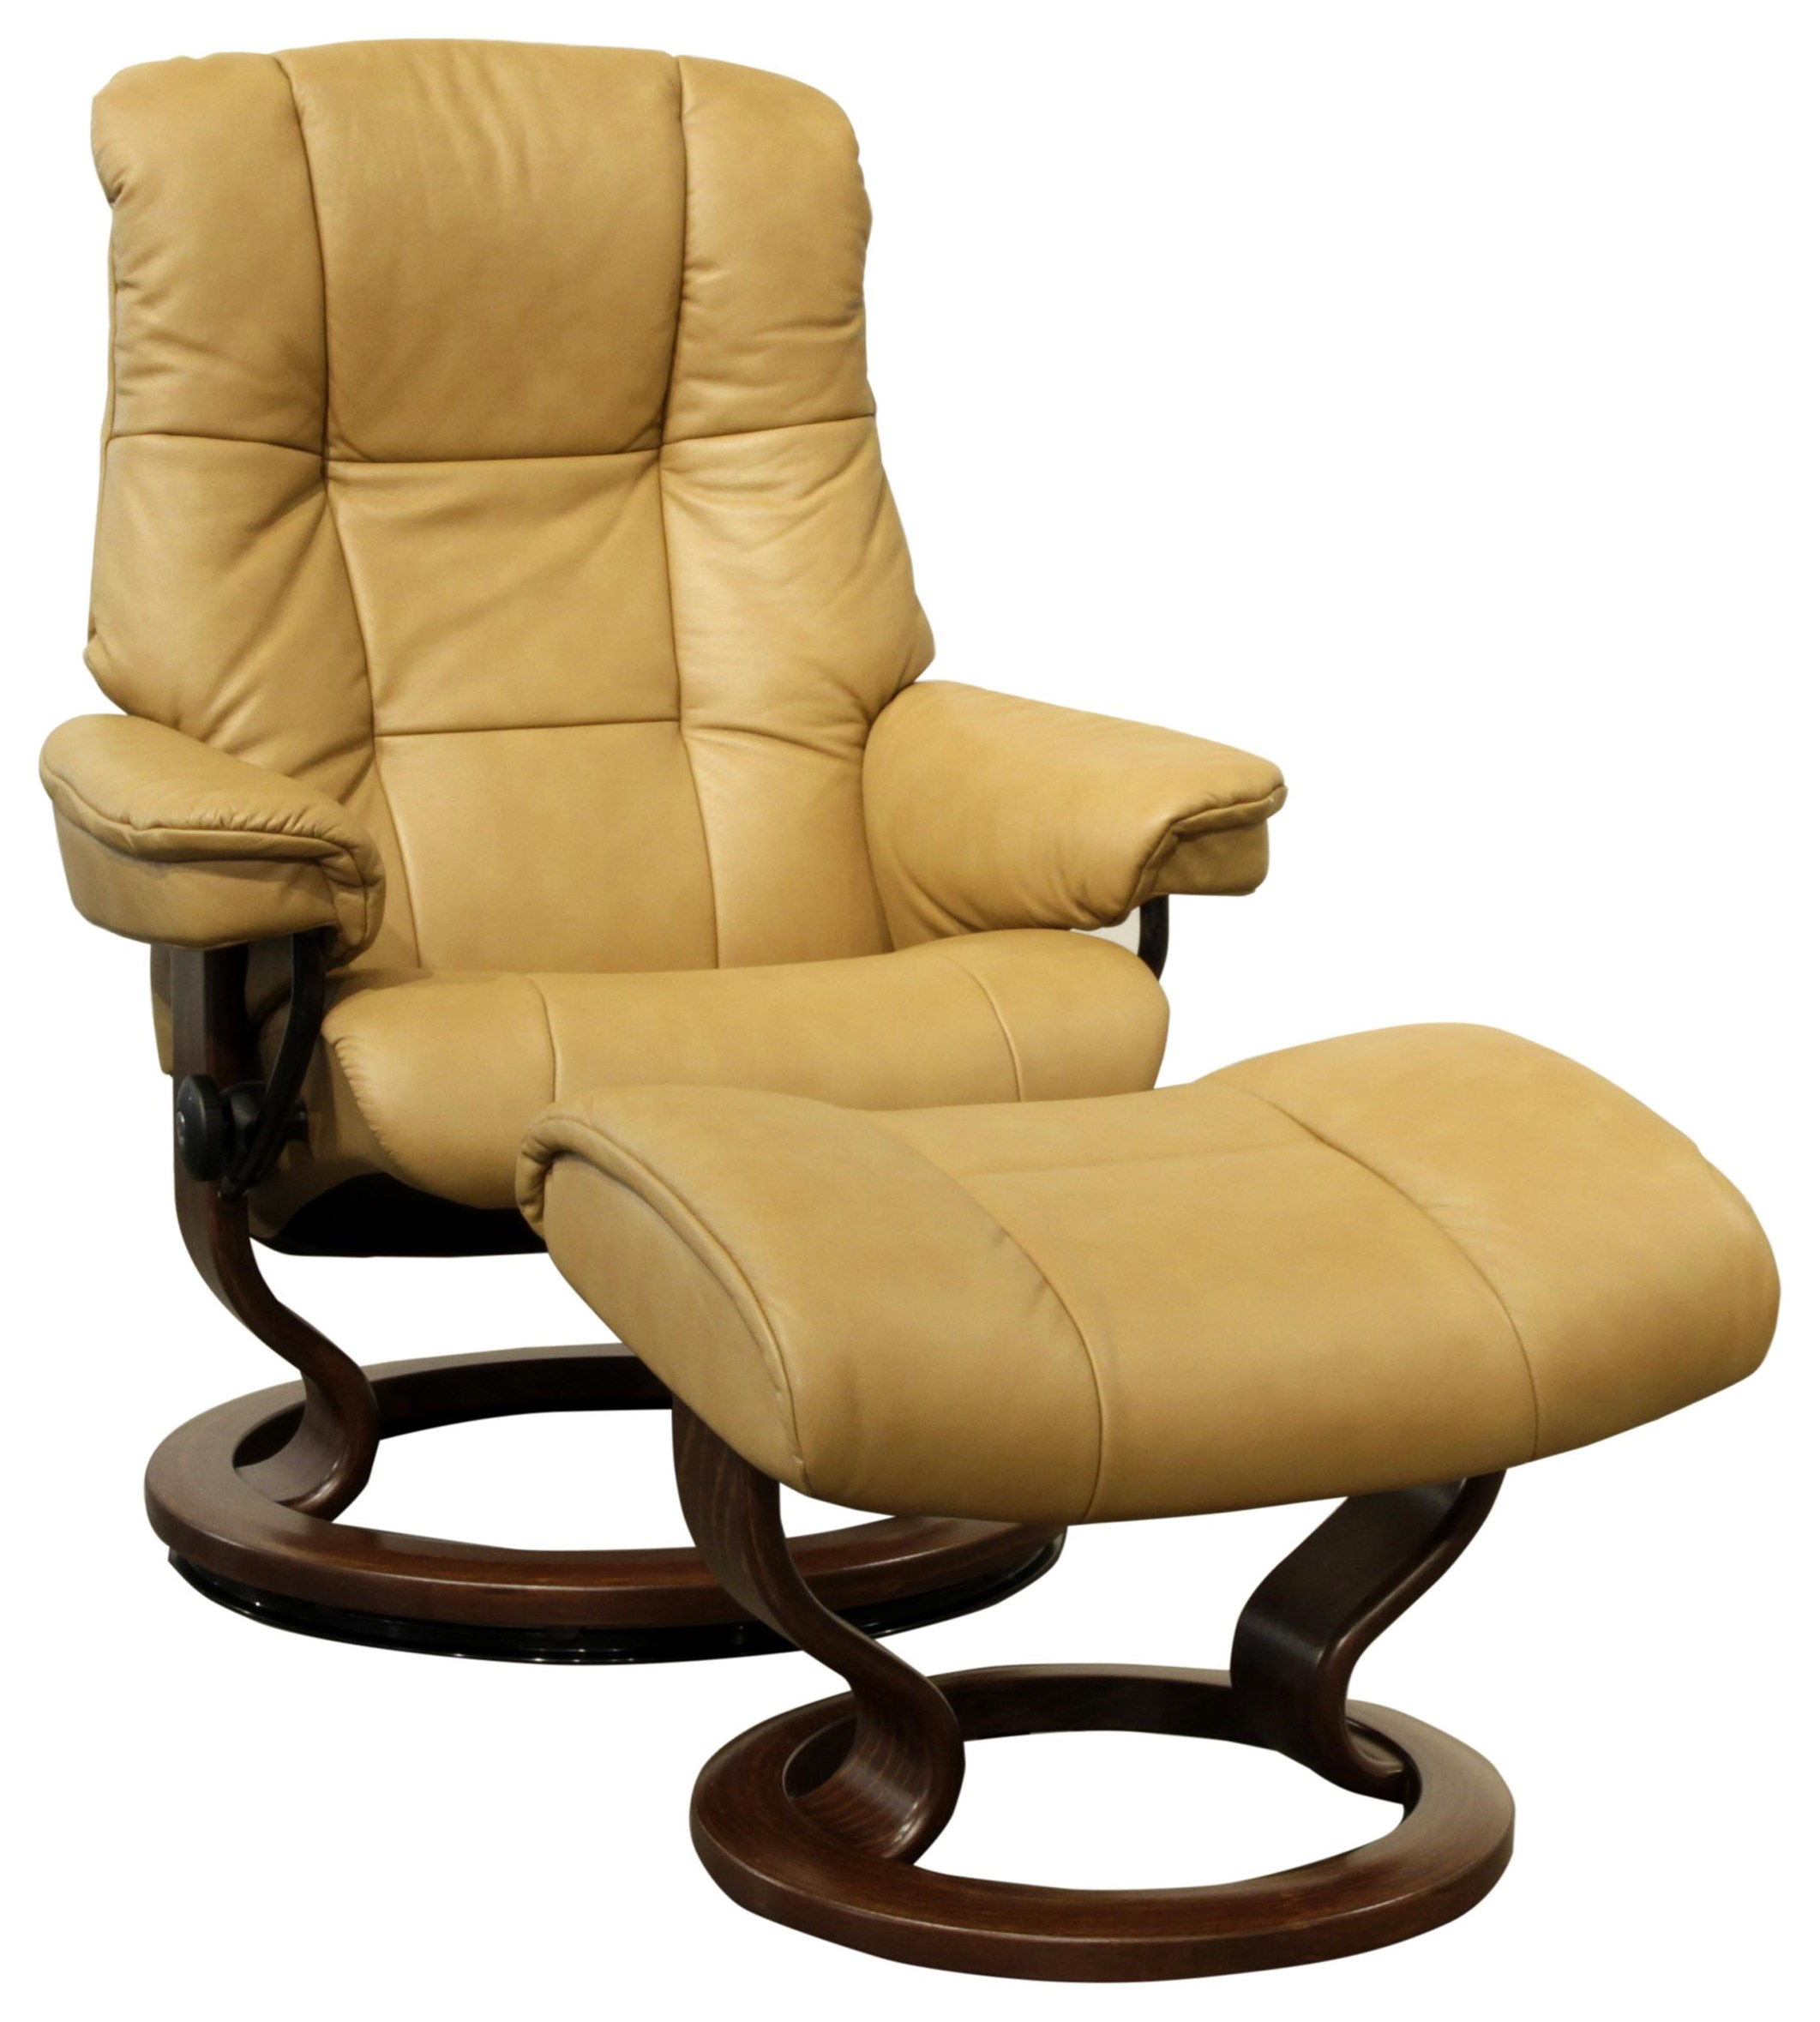 Small Stressless Chair & Ottoman by Stressless at HomeWorld Furniture